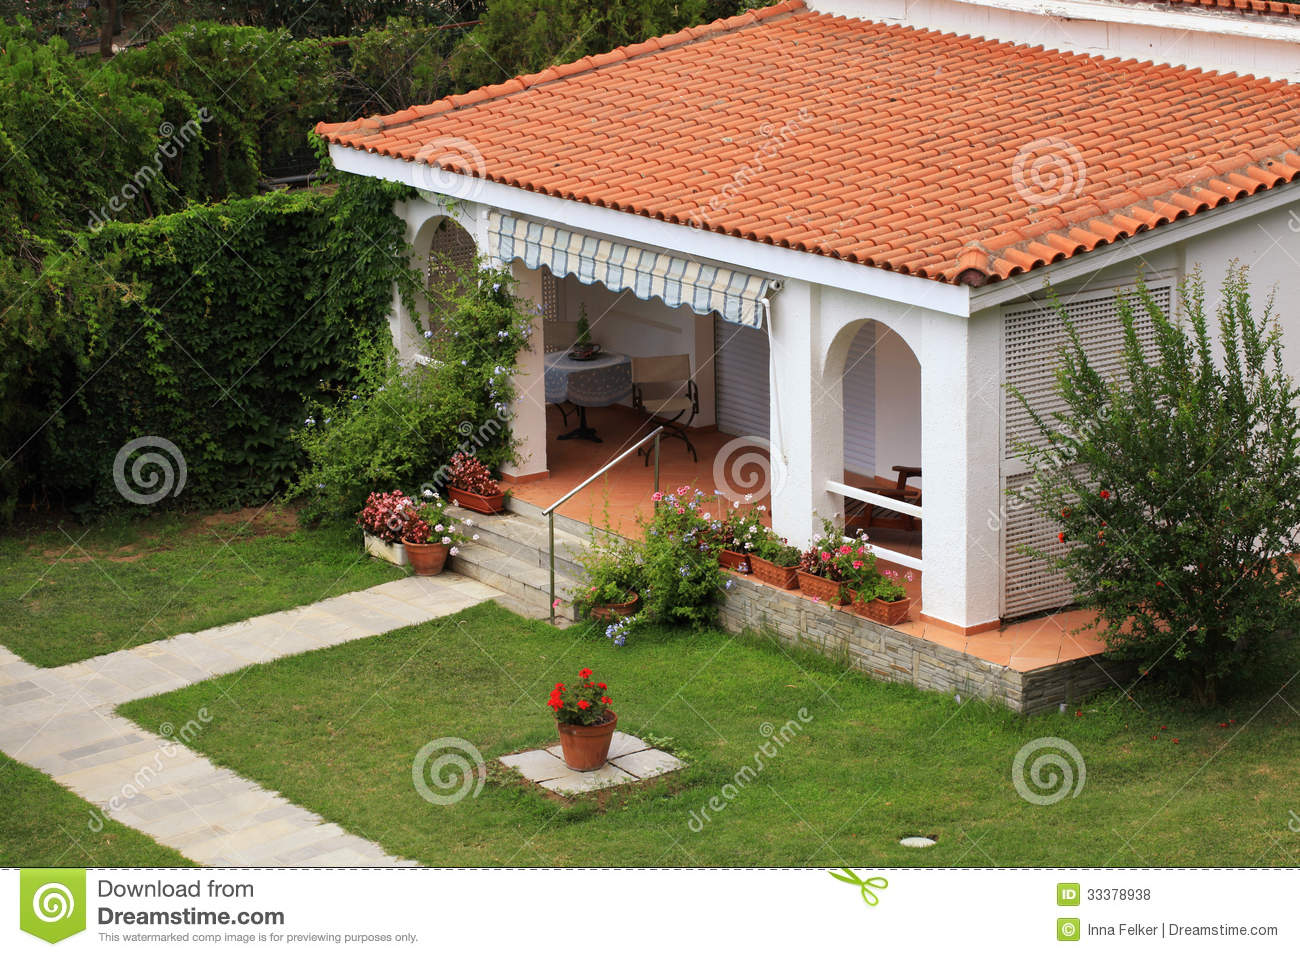 Sensational Beautiful White House With Small Terrace In The Garden Royalty Largest Home Design Picture Inspirations Pitcheantrous